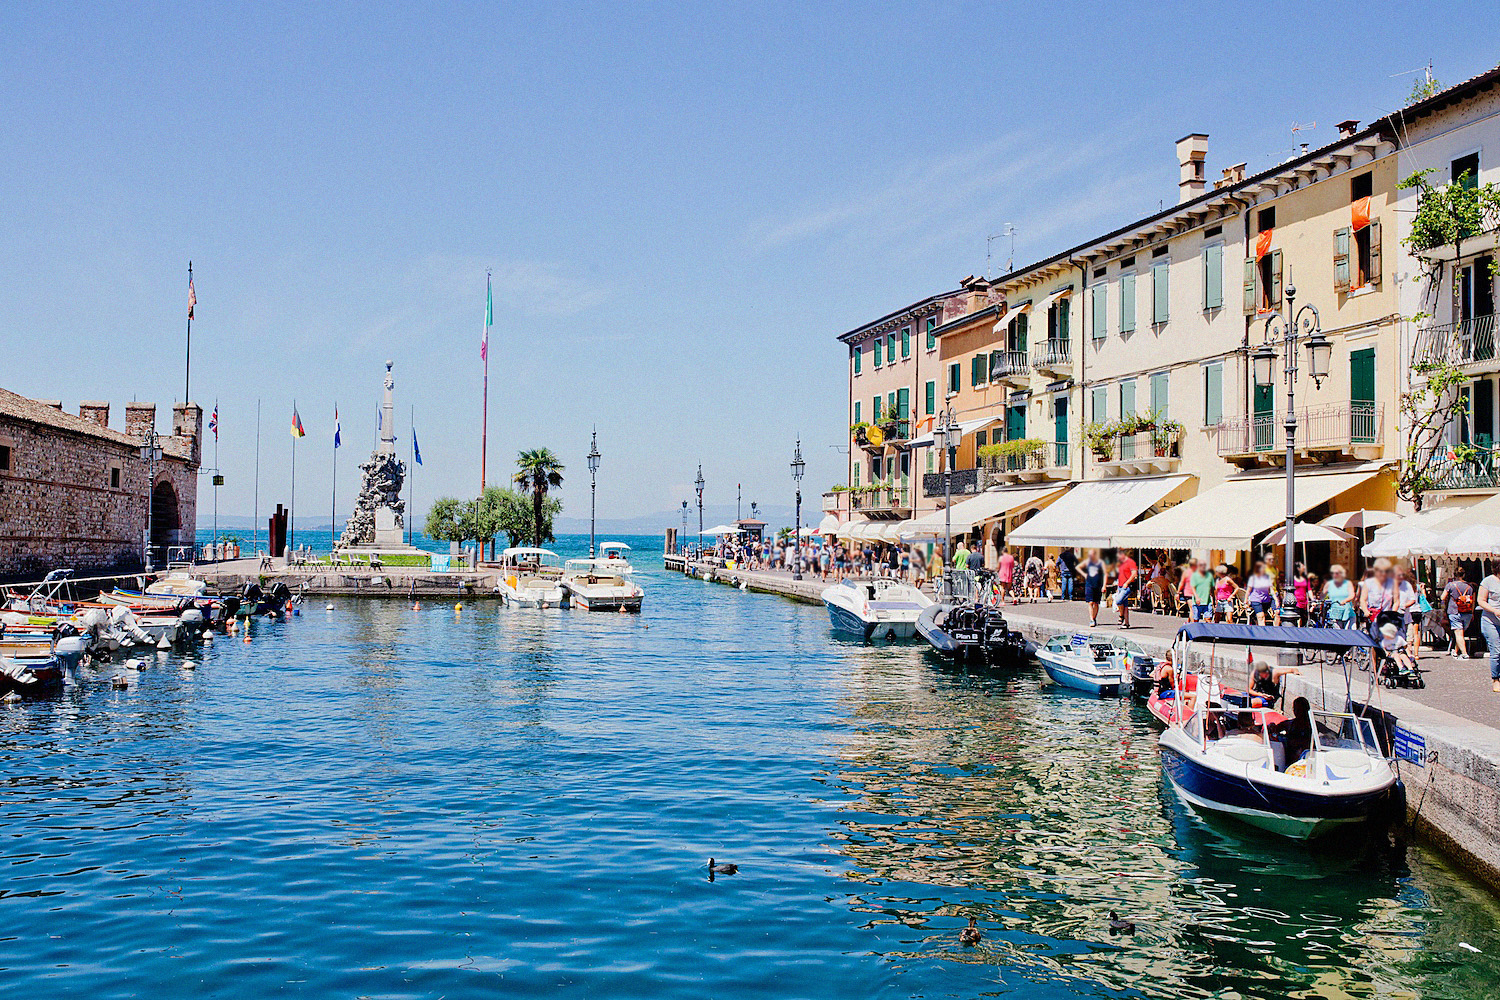 Weekend at Lago di Garda & taking a summer break